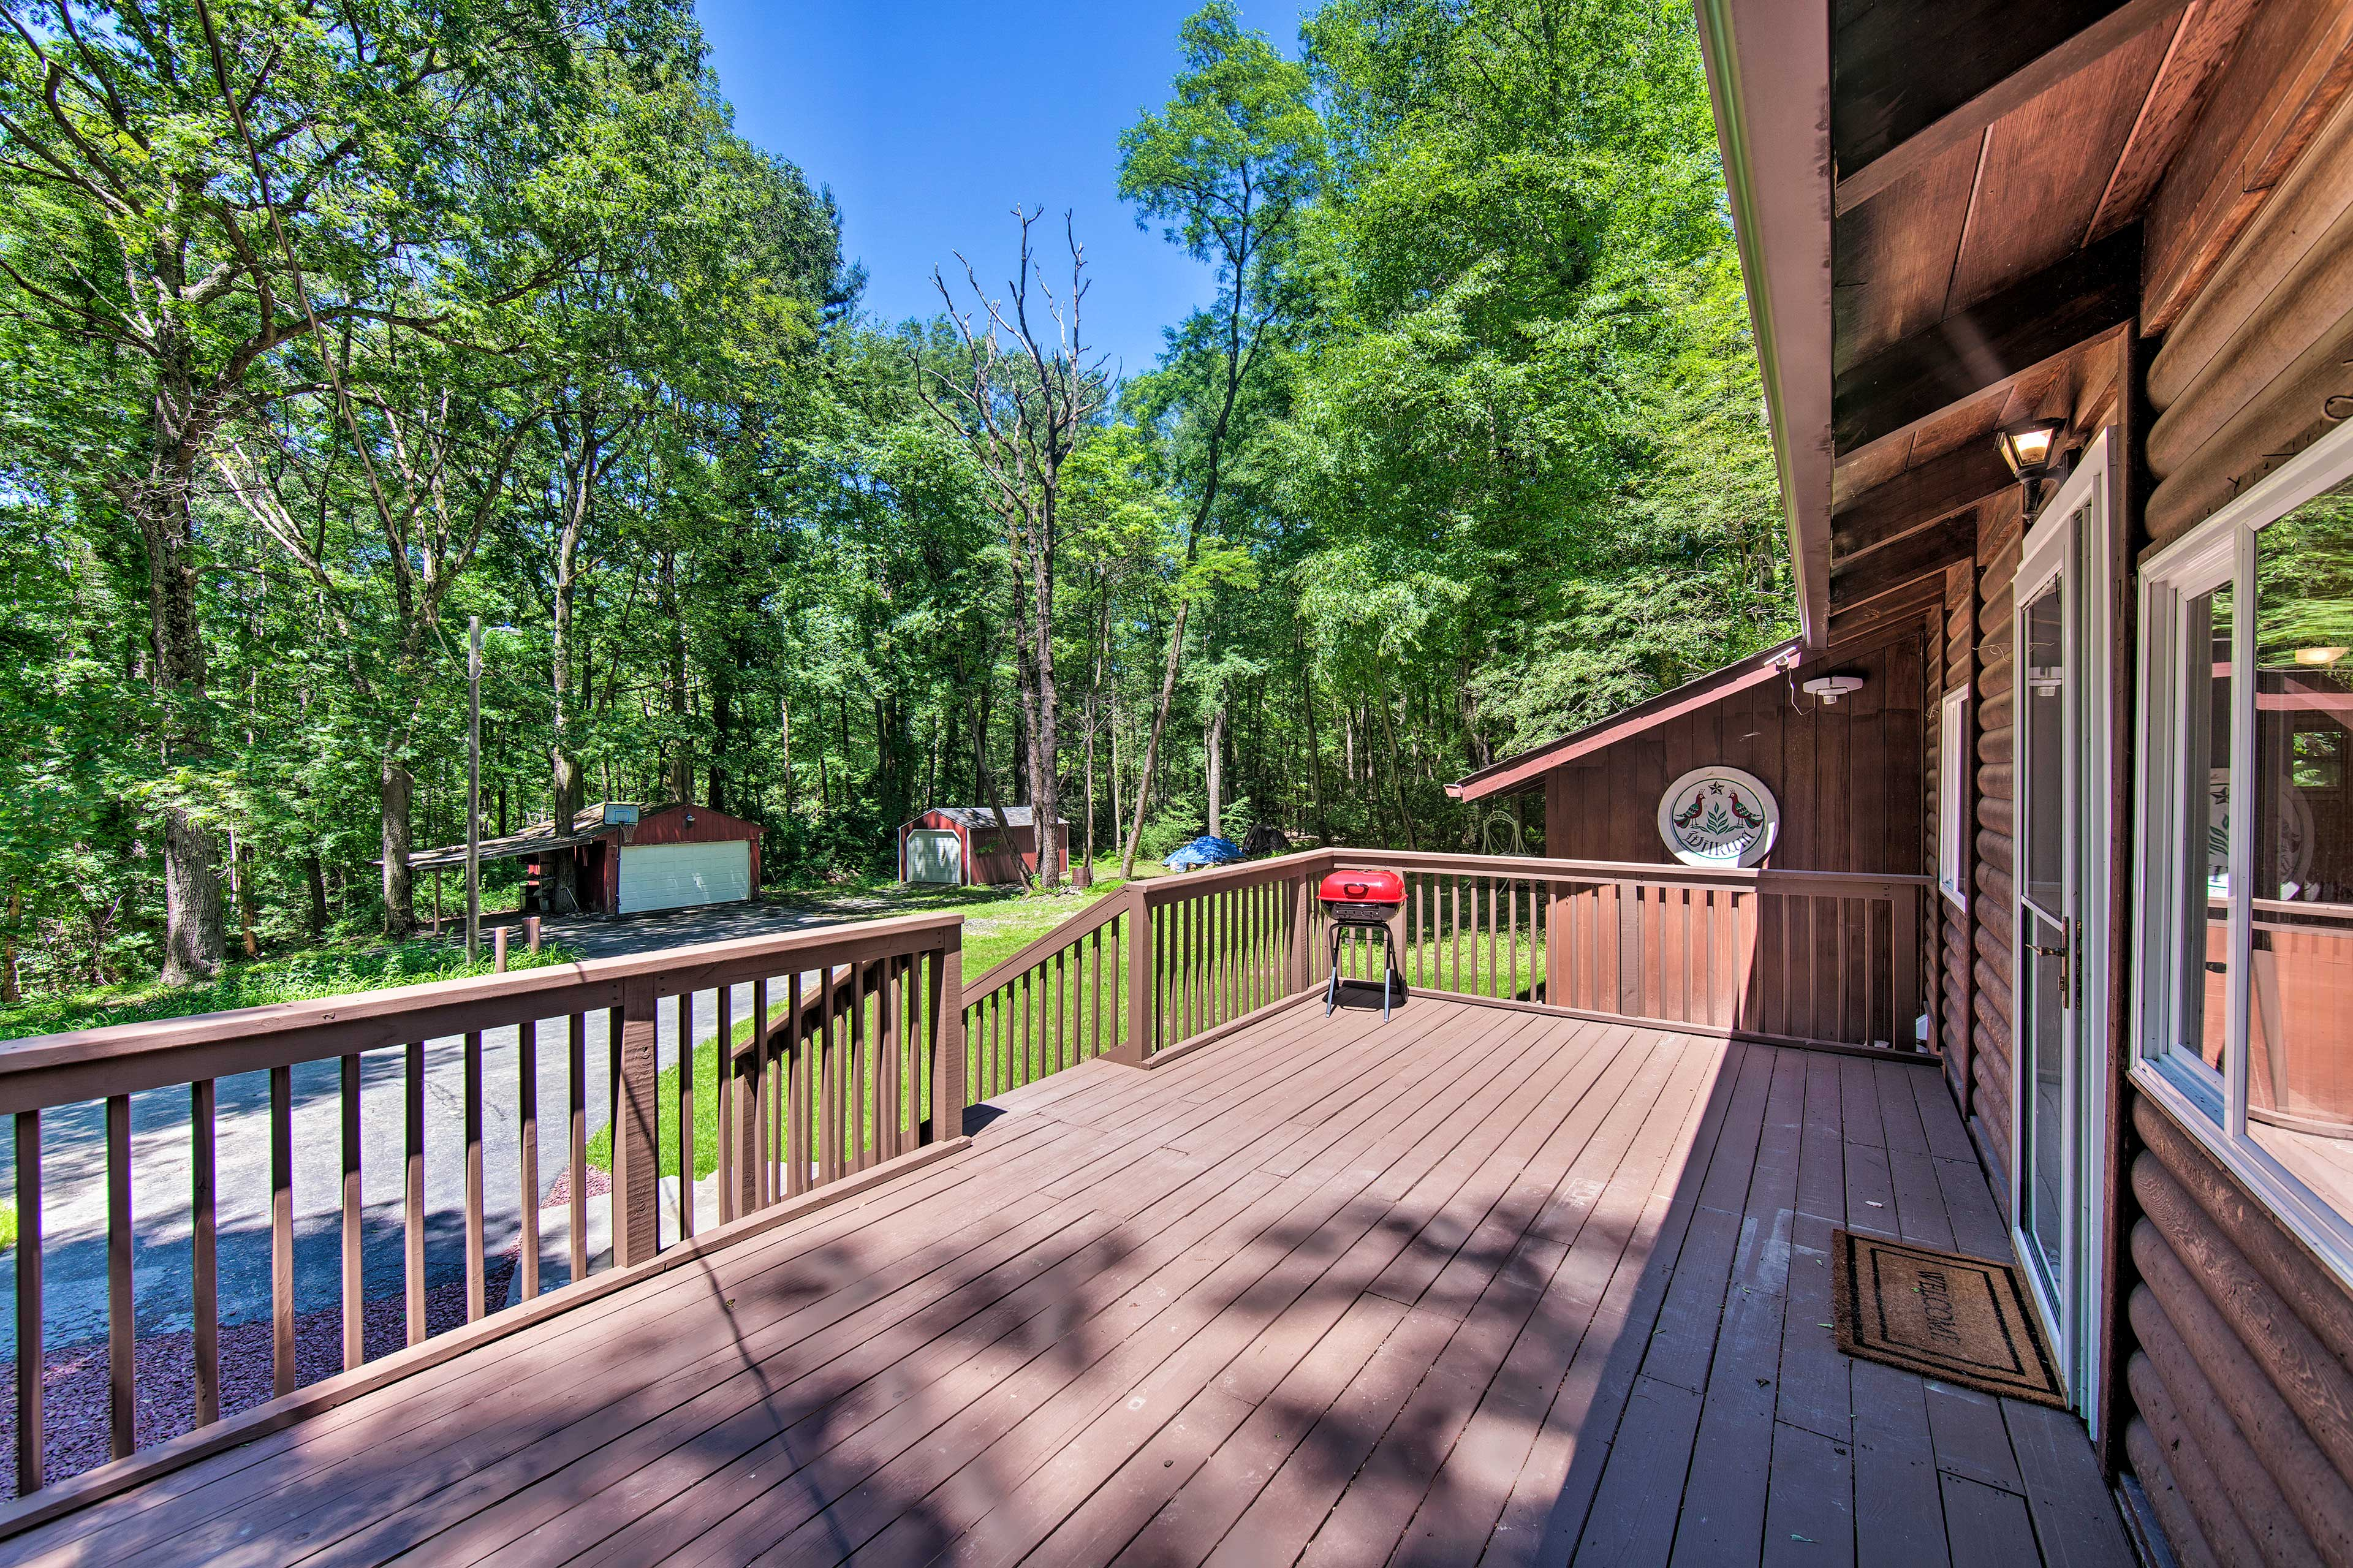 The large deck is the perfect place to sunbathe and watch for wildlife.